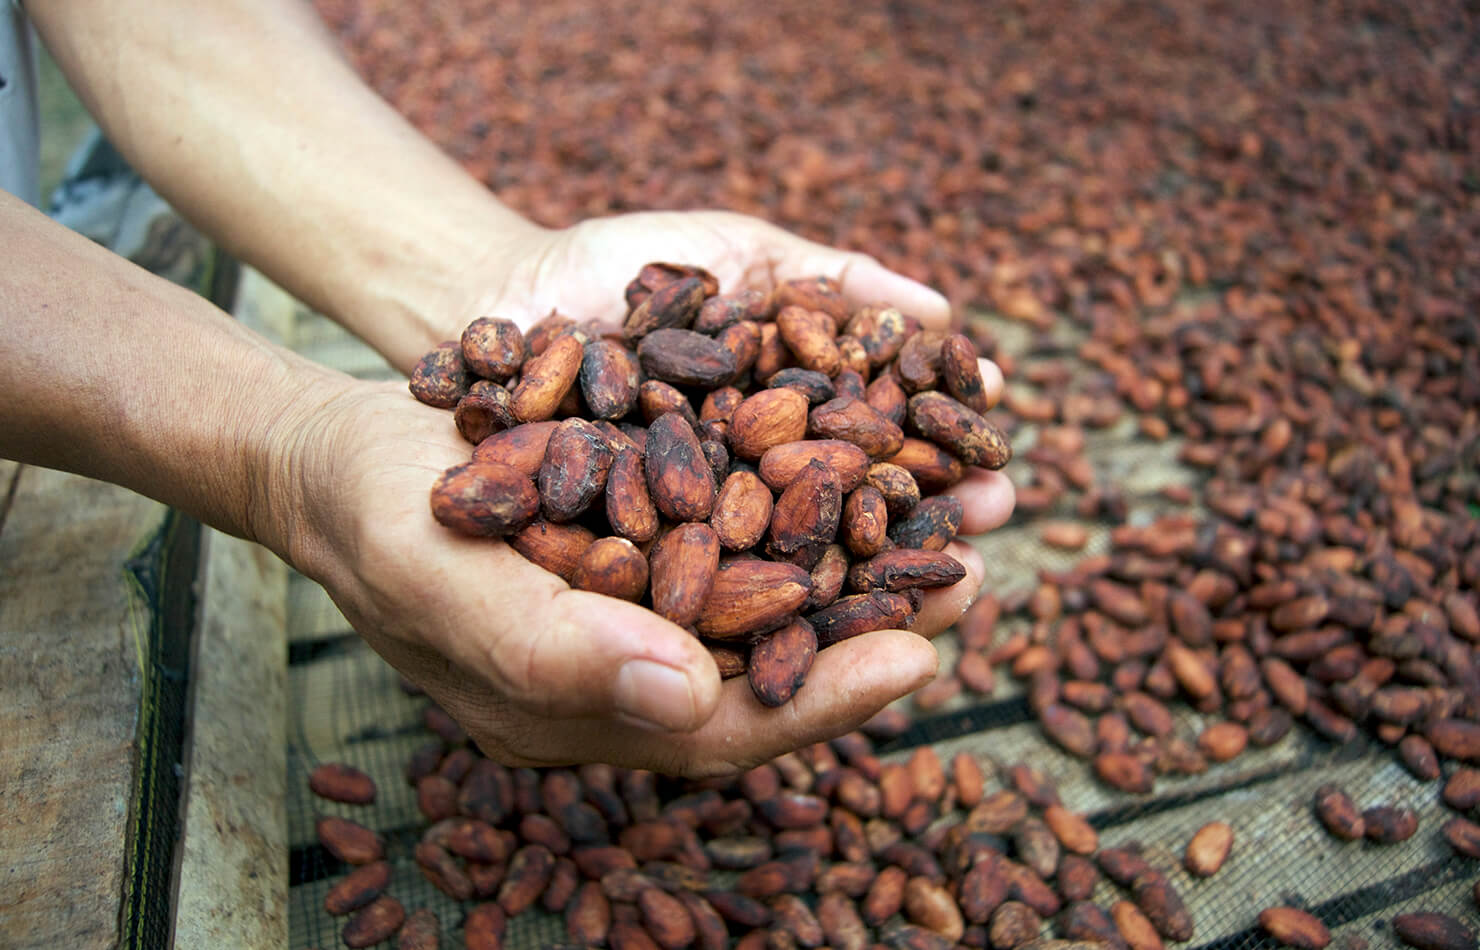 Dried cacao beans